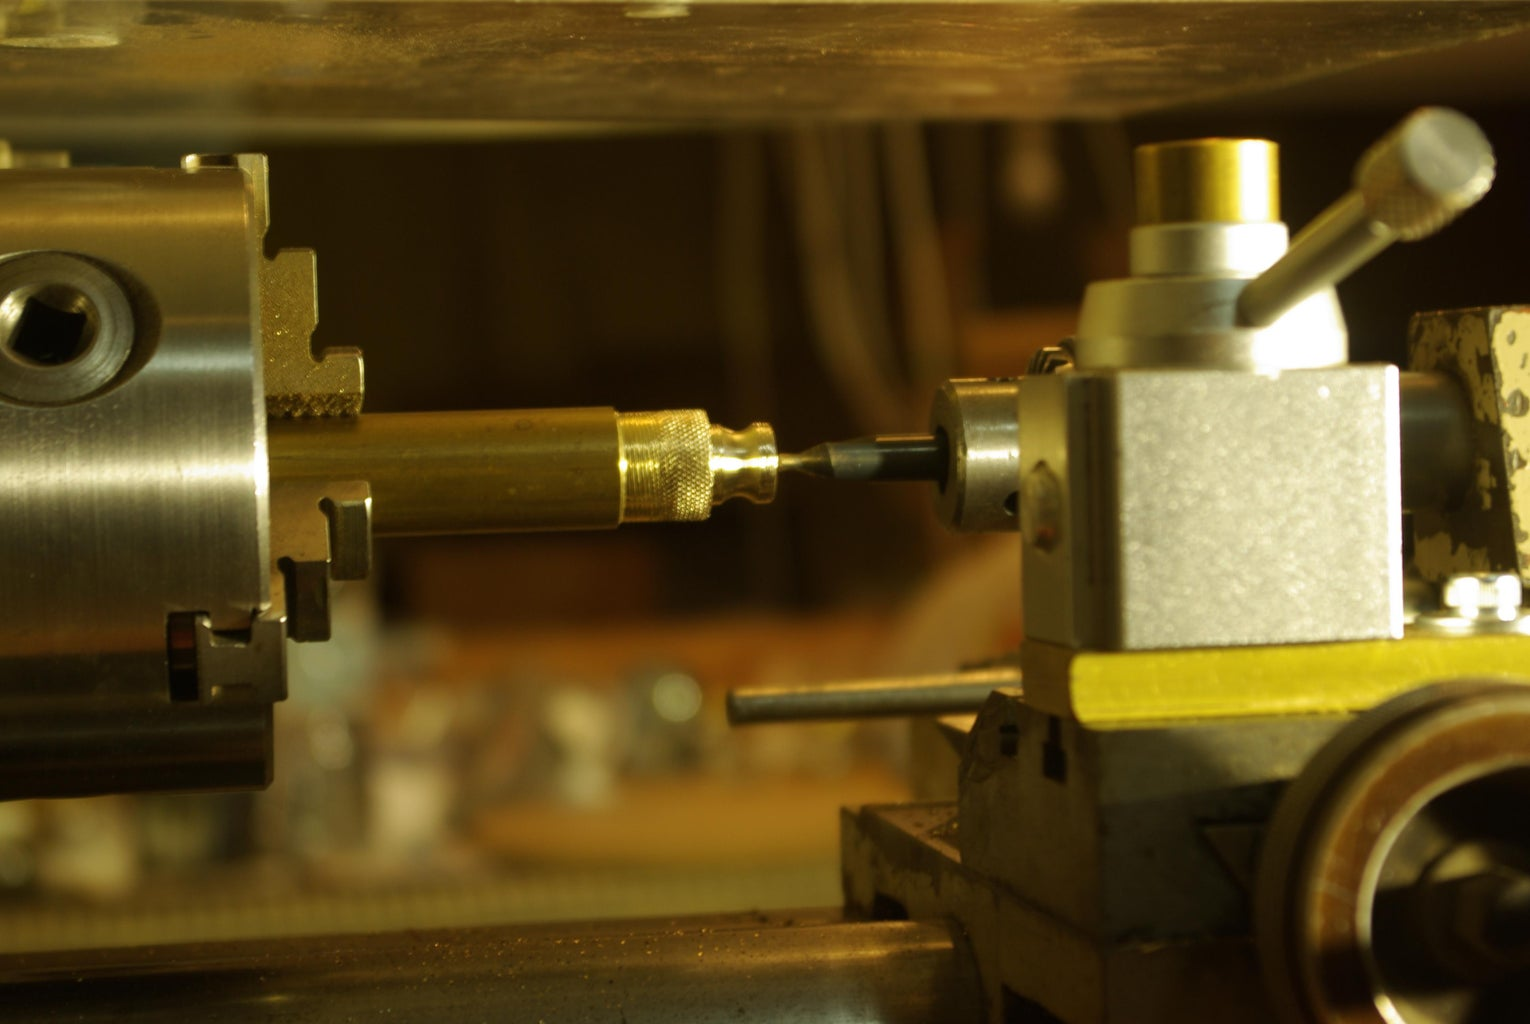 Making the Knurled Nut